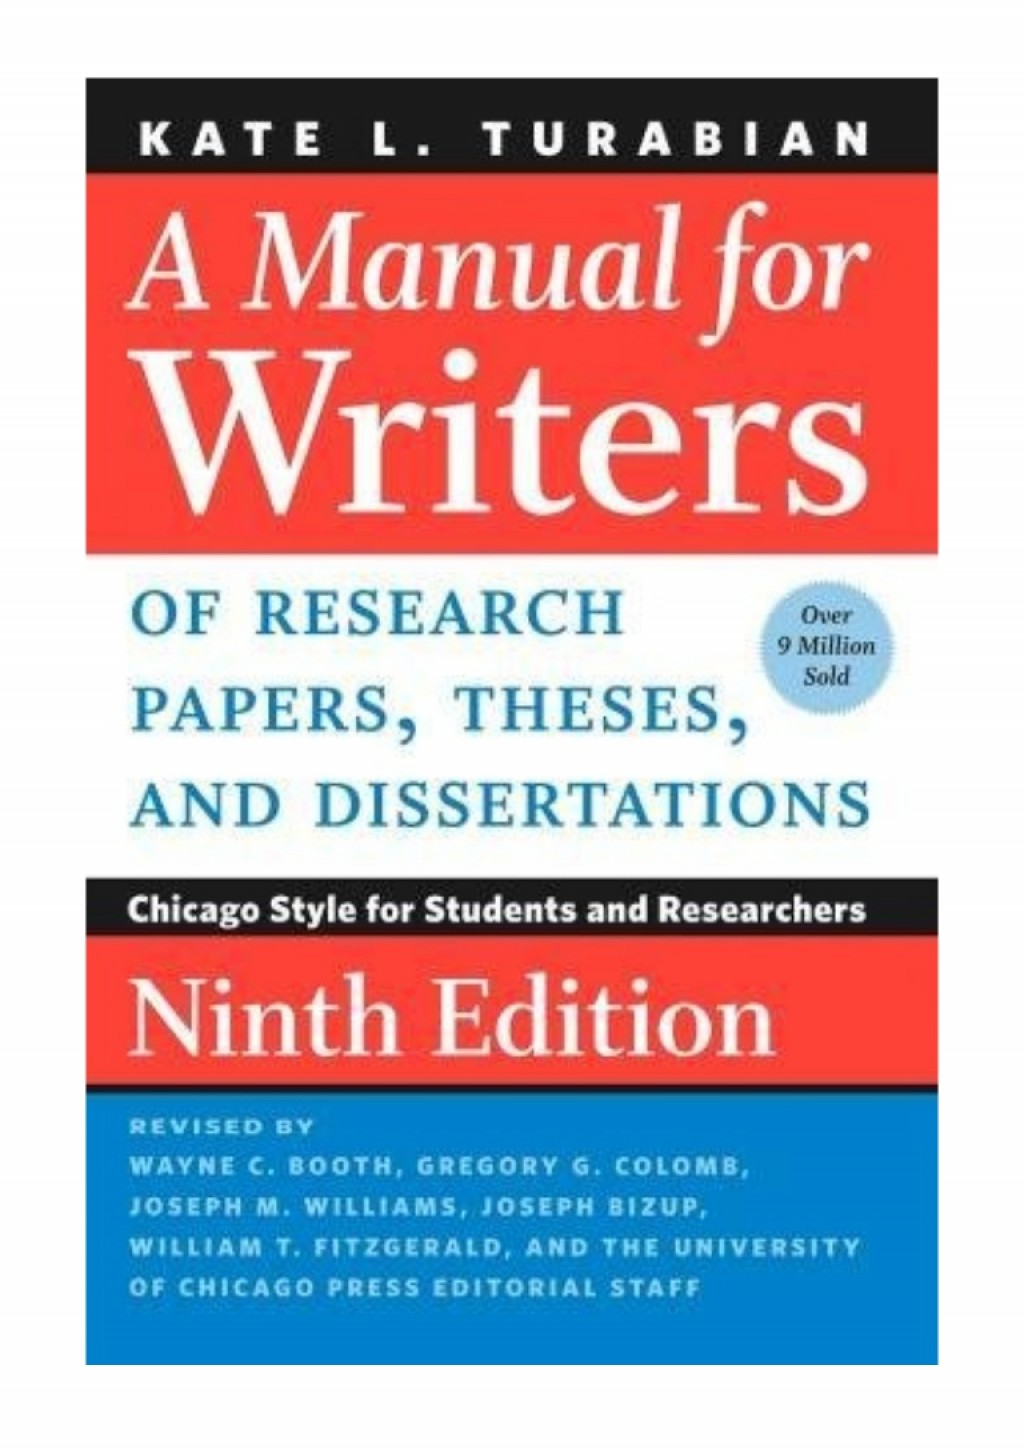 007 022643057x Amanualforwritersofresearchpapersthesesanddissertationsnintheditionbykatel Thumbnail Research Paper Manual For Writers Of Papers Theses And Sensational A Dissertations Eighth Edition Pdf 9th 8th Large